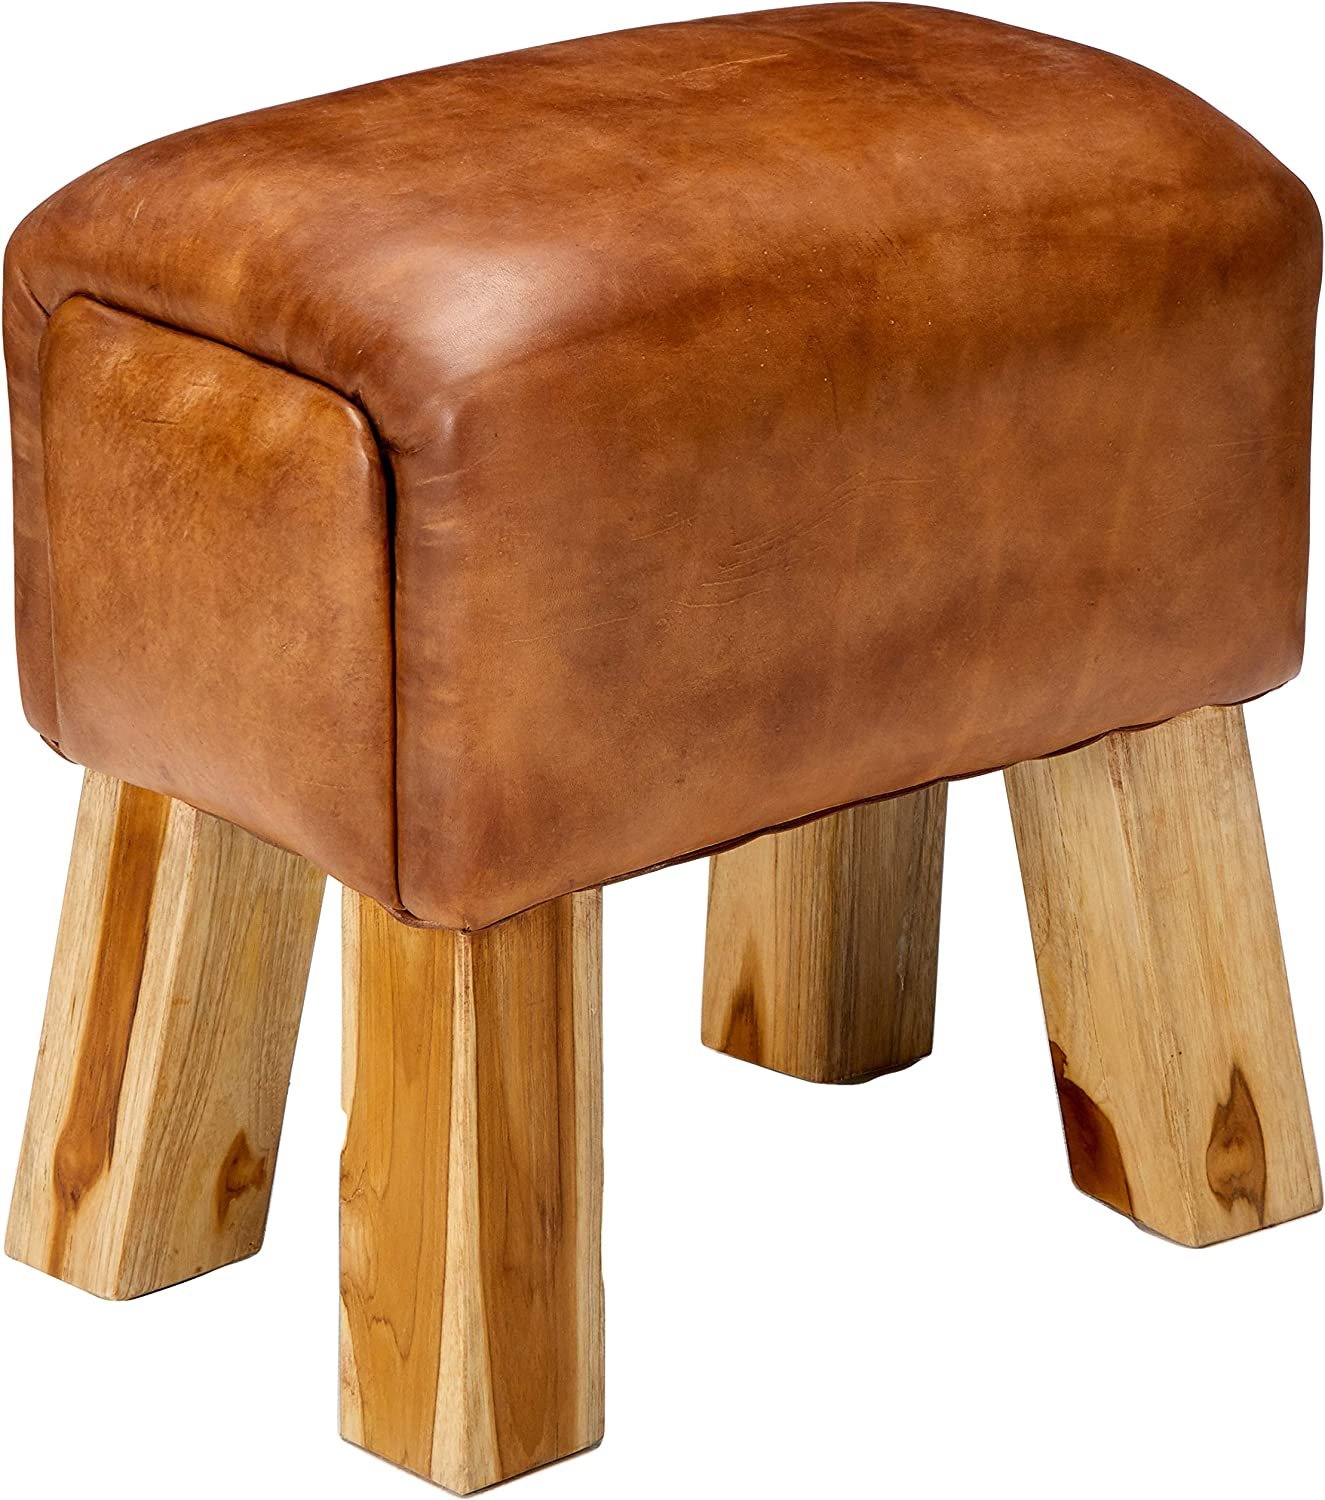 Bare Decor Gorgie Accent Stool in Brown Genuine Leather, Small